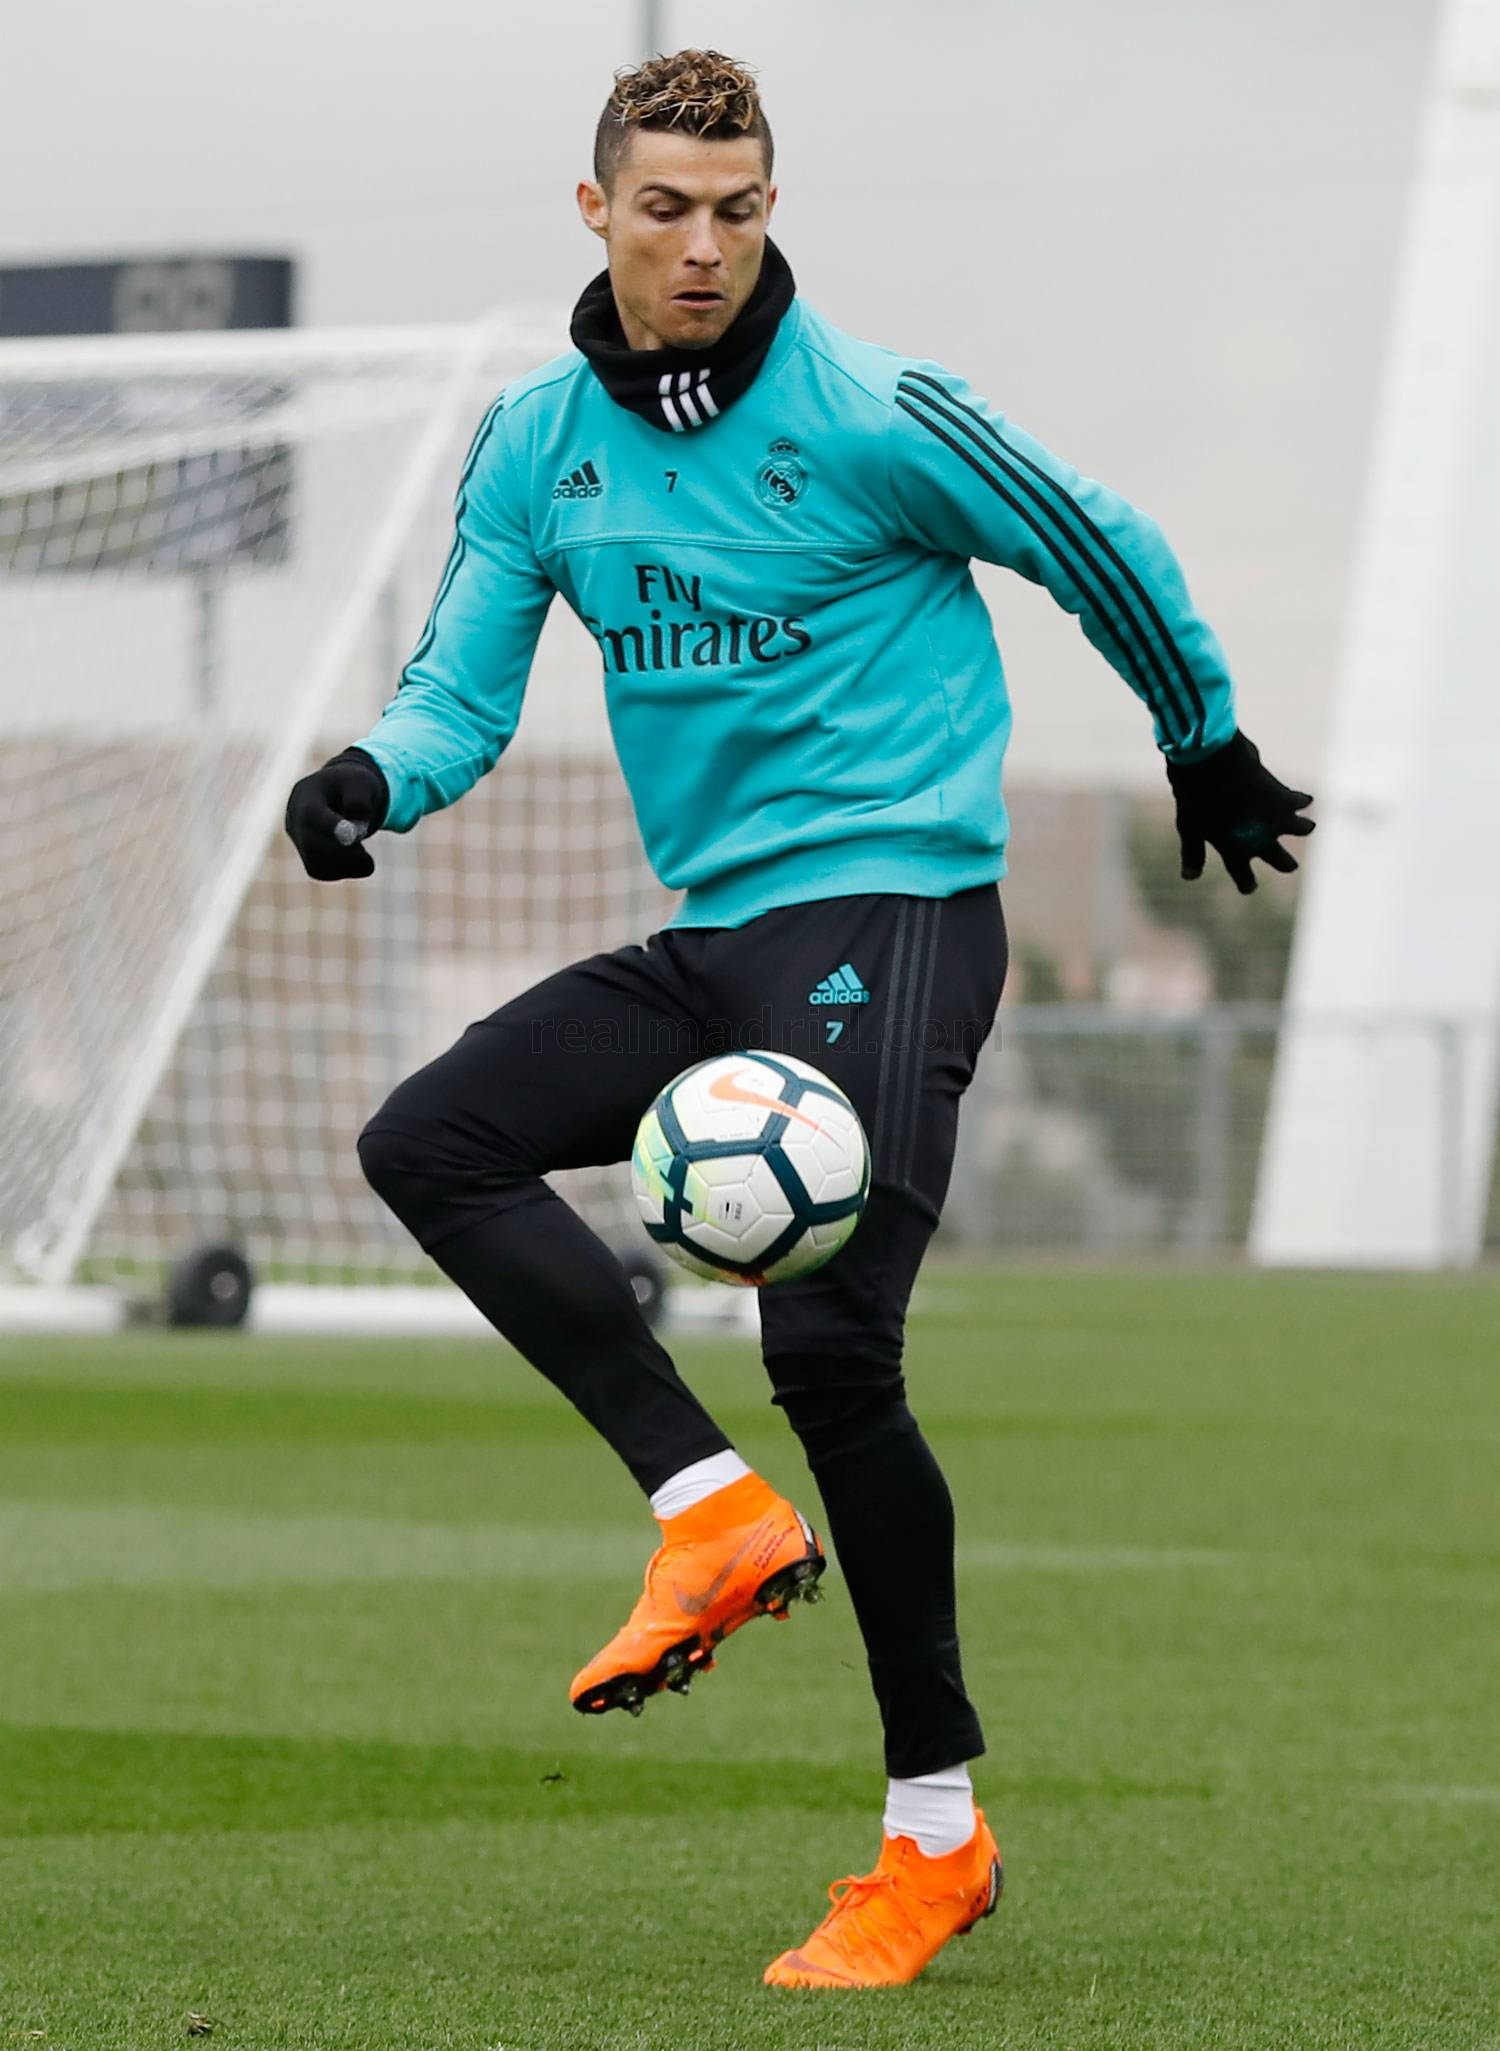 Real Madrid - Entrenamiento del Real Madrid - 09-03-2018